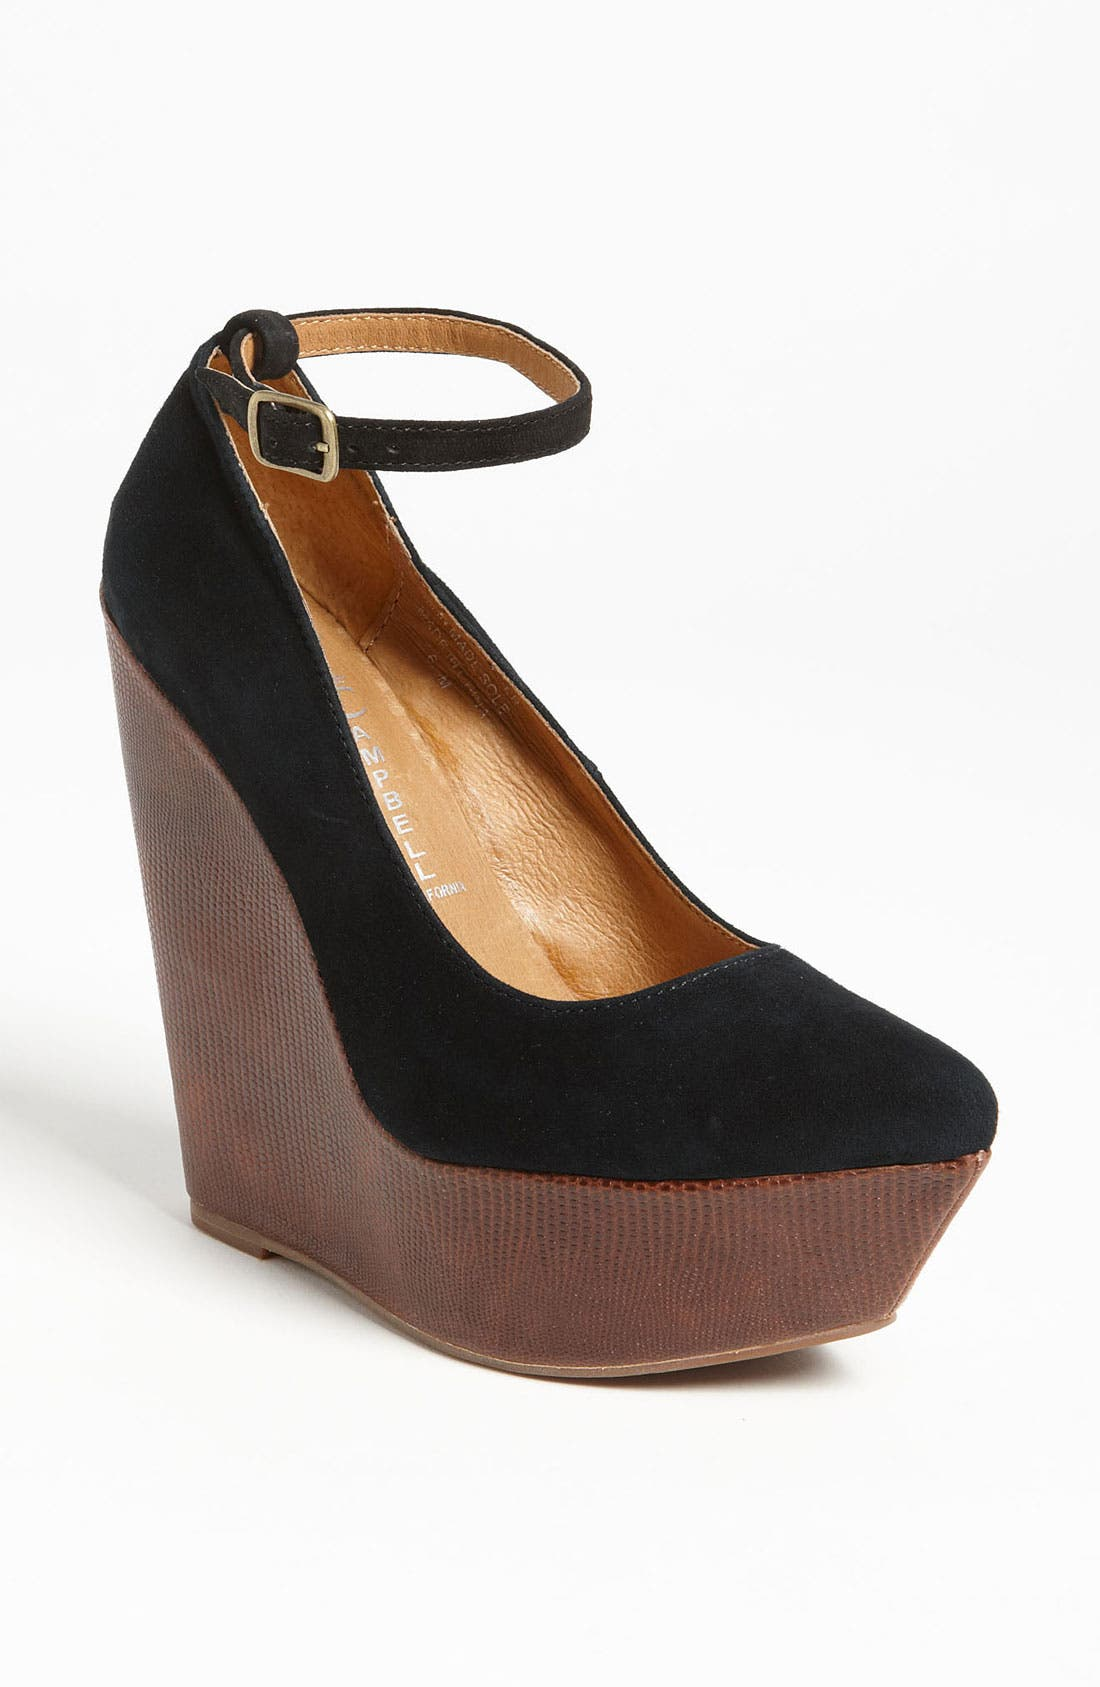 Main Image - Jeffrey Campbell 'Pizan' Pump